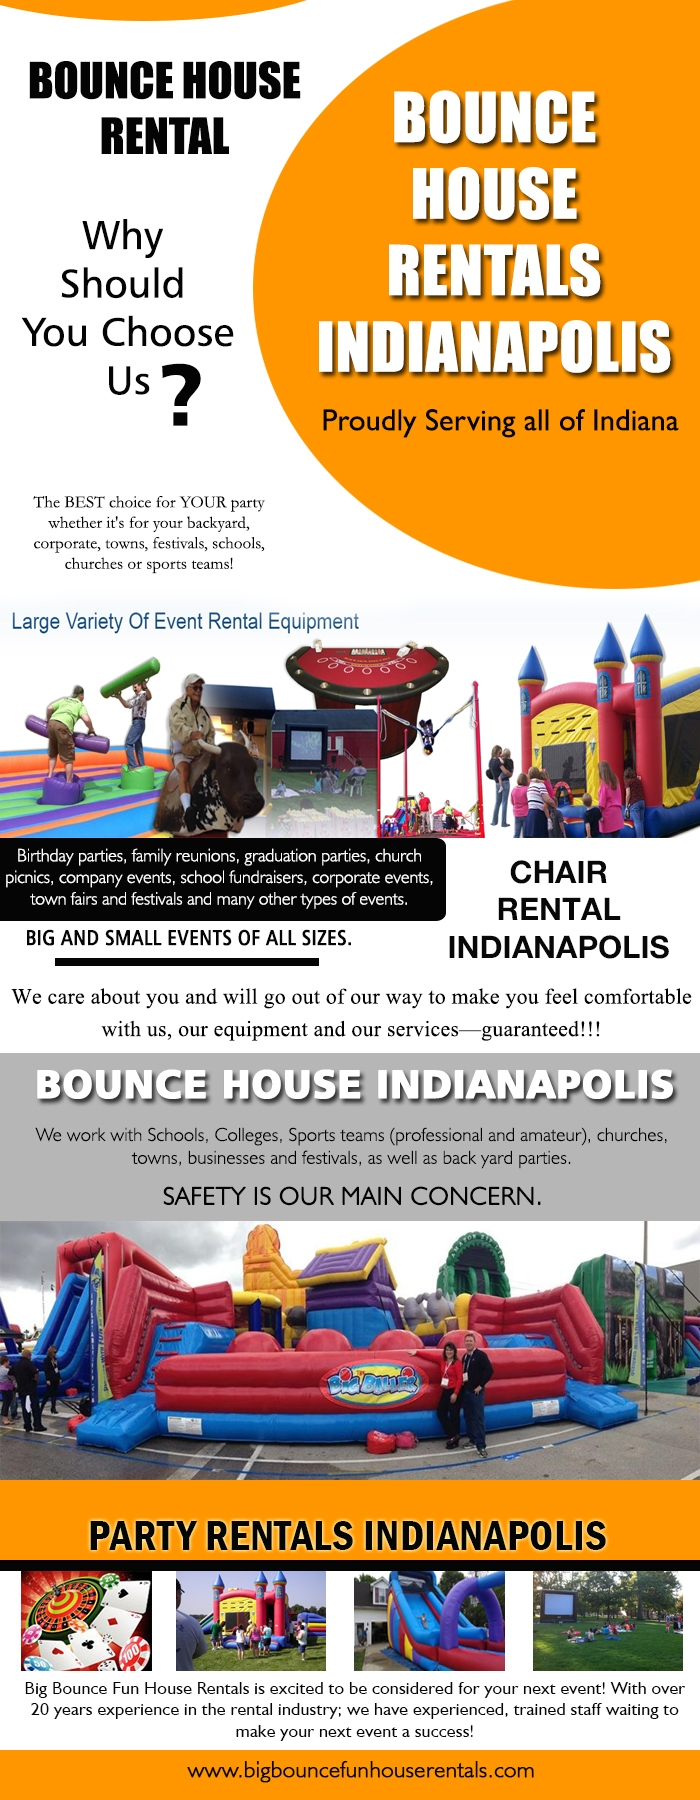 inflatable rentals indianapolis - inflatablesparty   ello